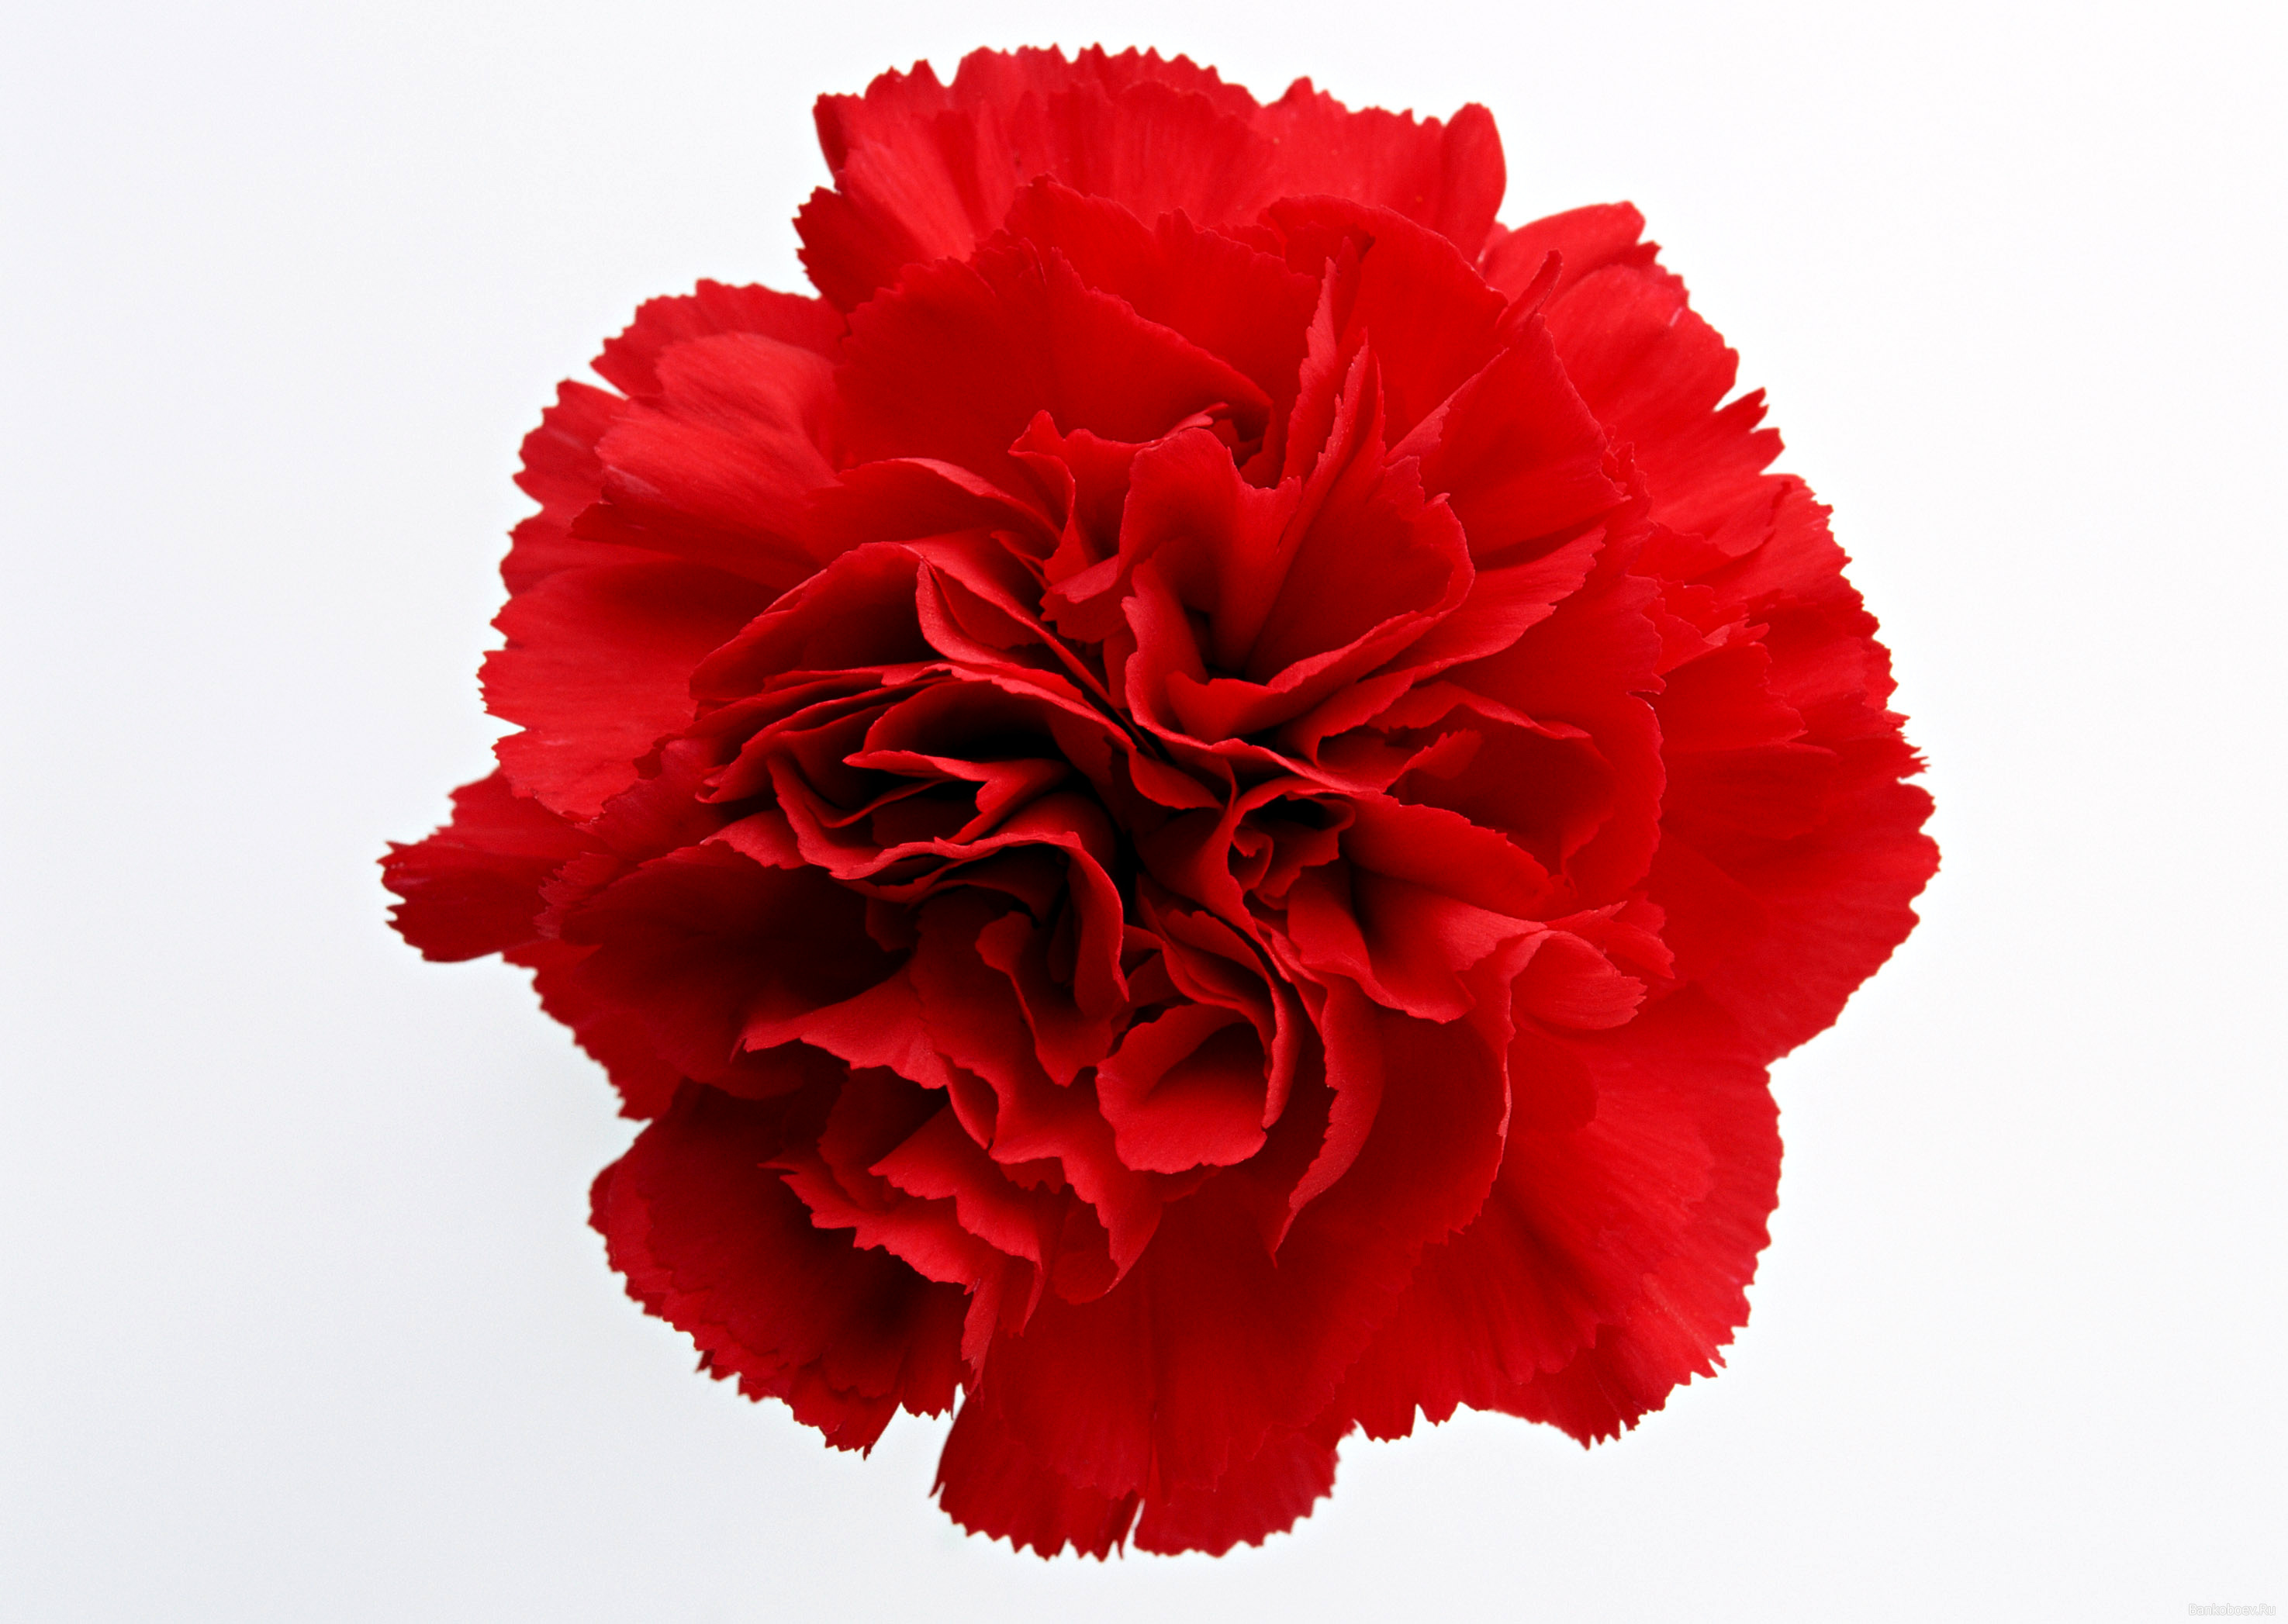 carnation tattoo images clipart best red carnation clipart carnation clipart images